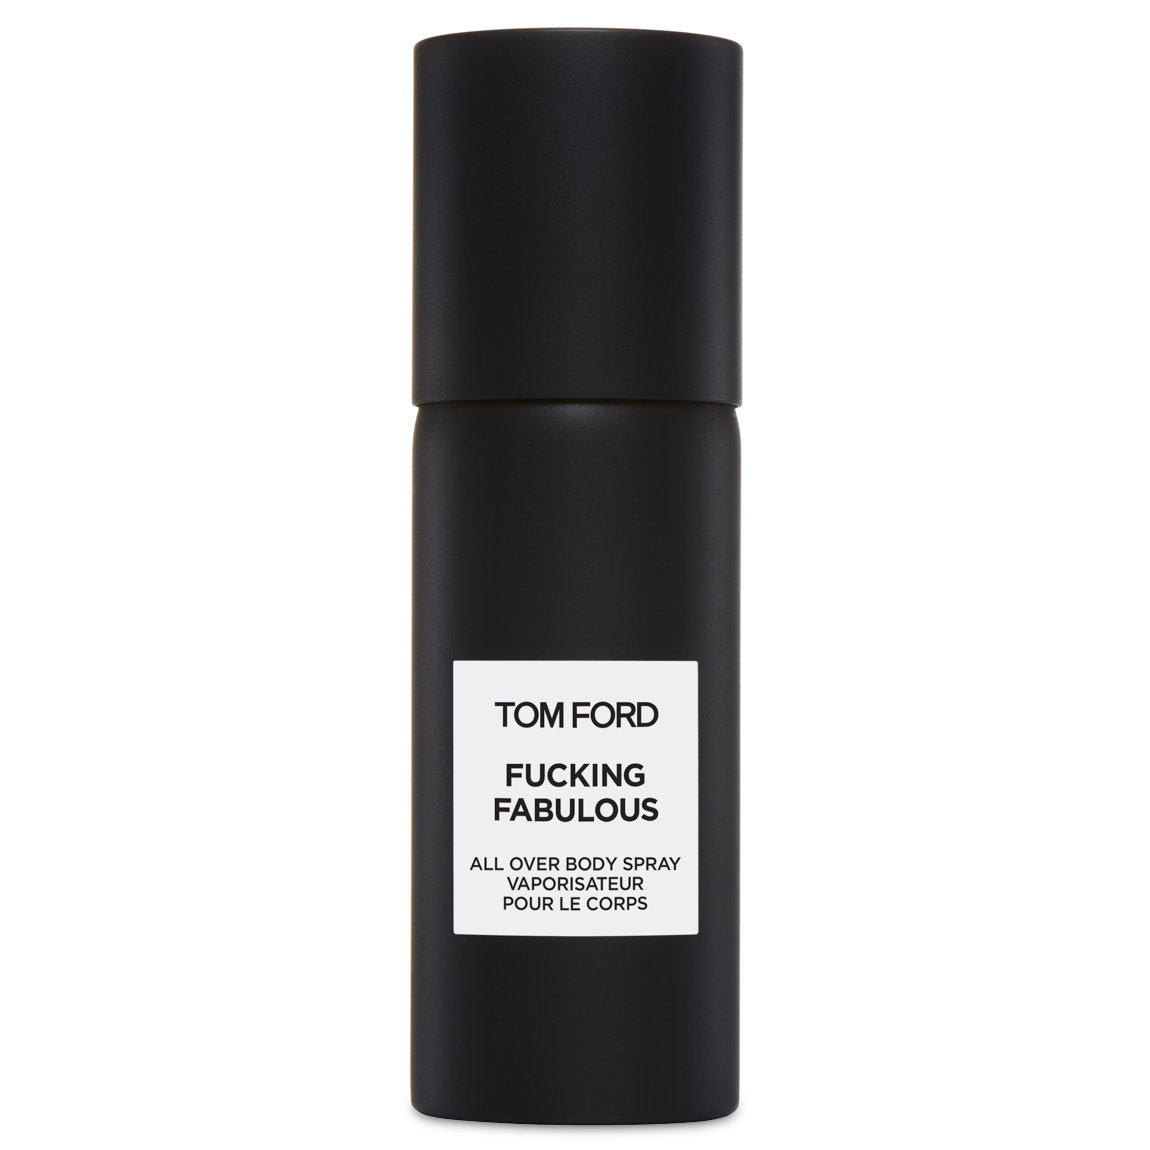 TOM FORD Fucking Fabulous All Over Body Spray alternative view 1 - product swatch.